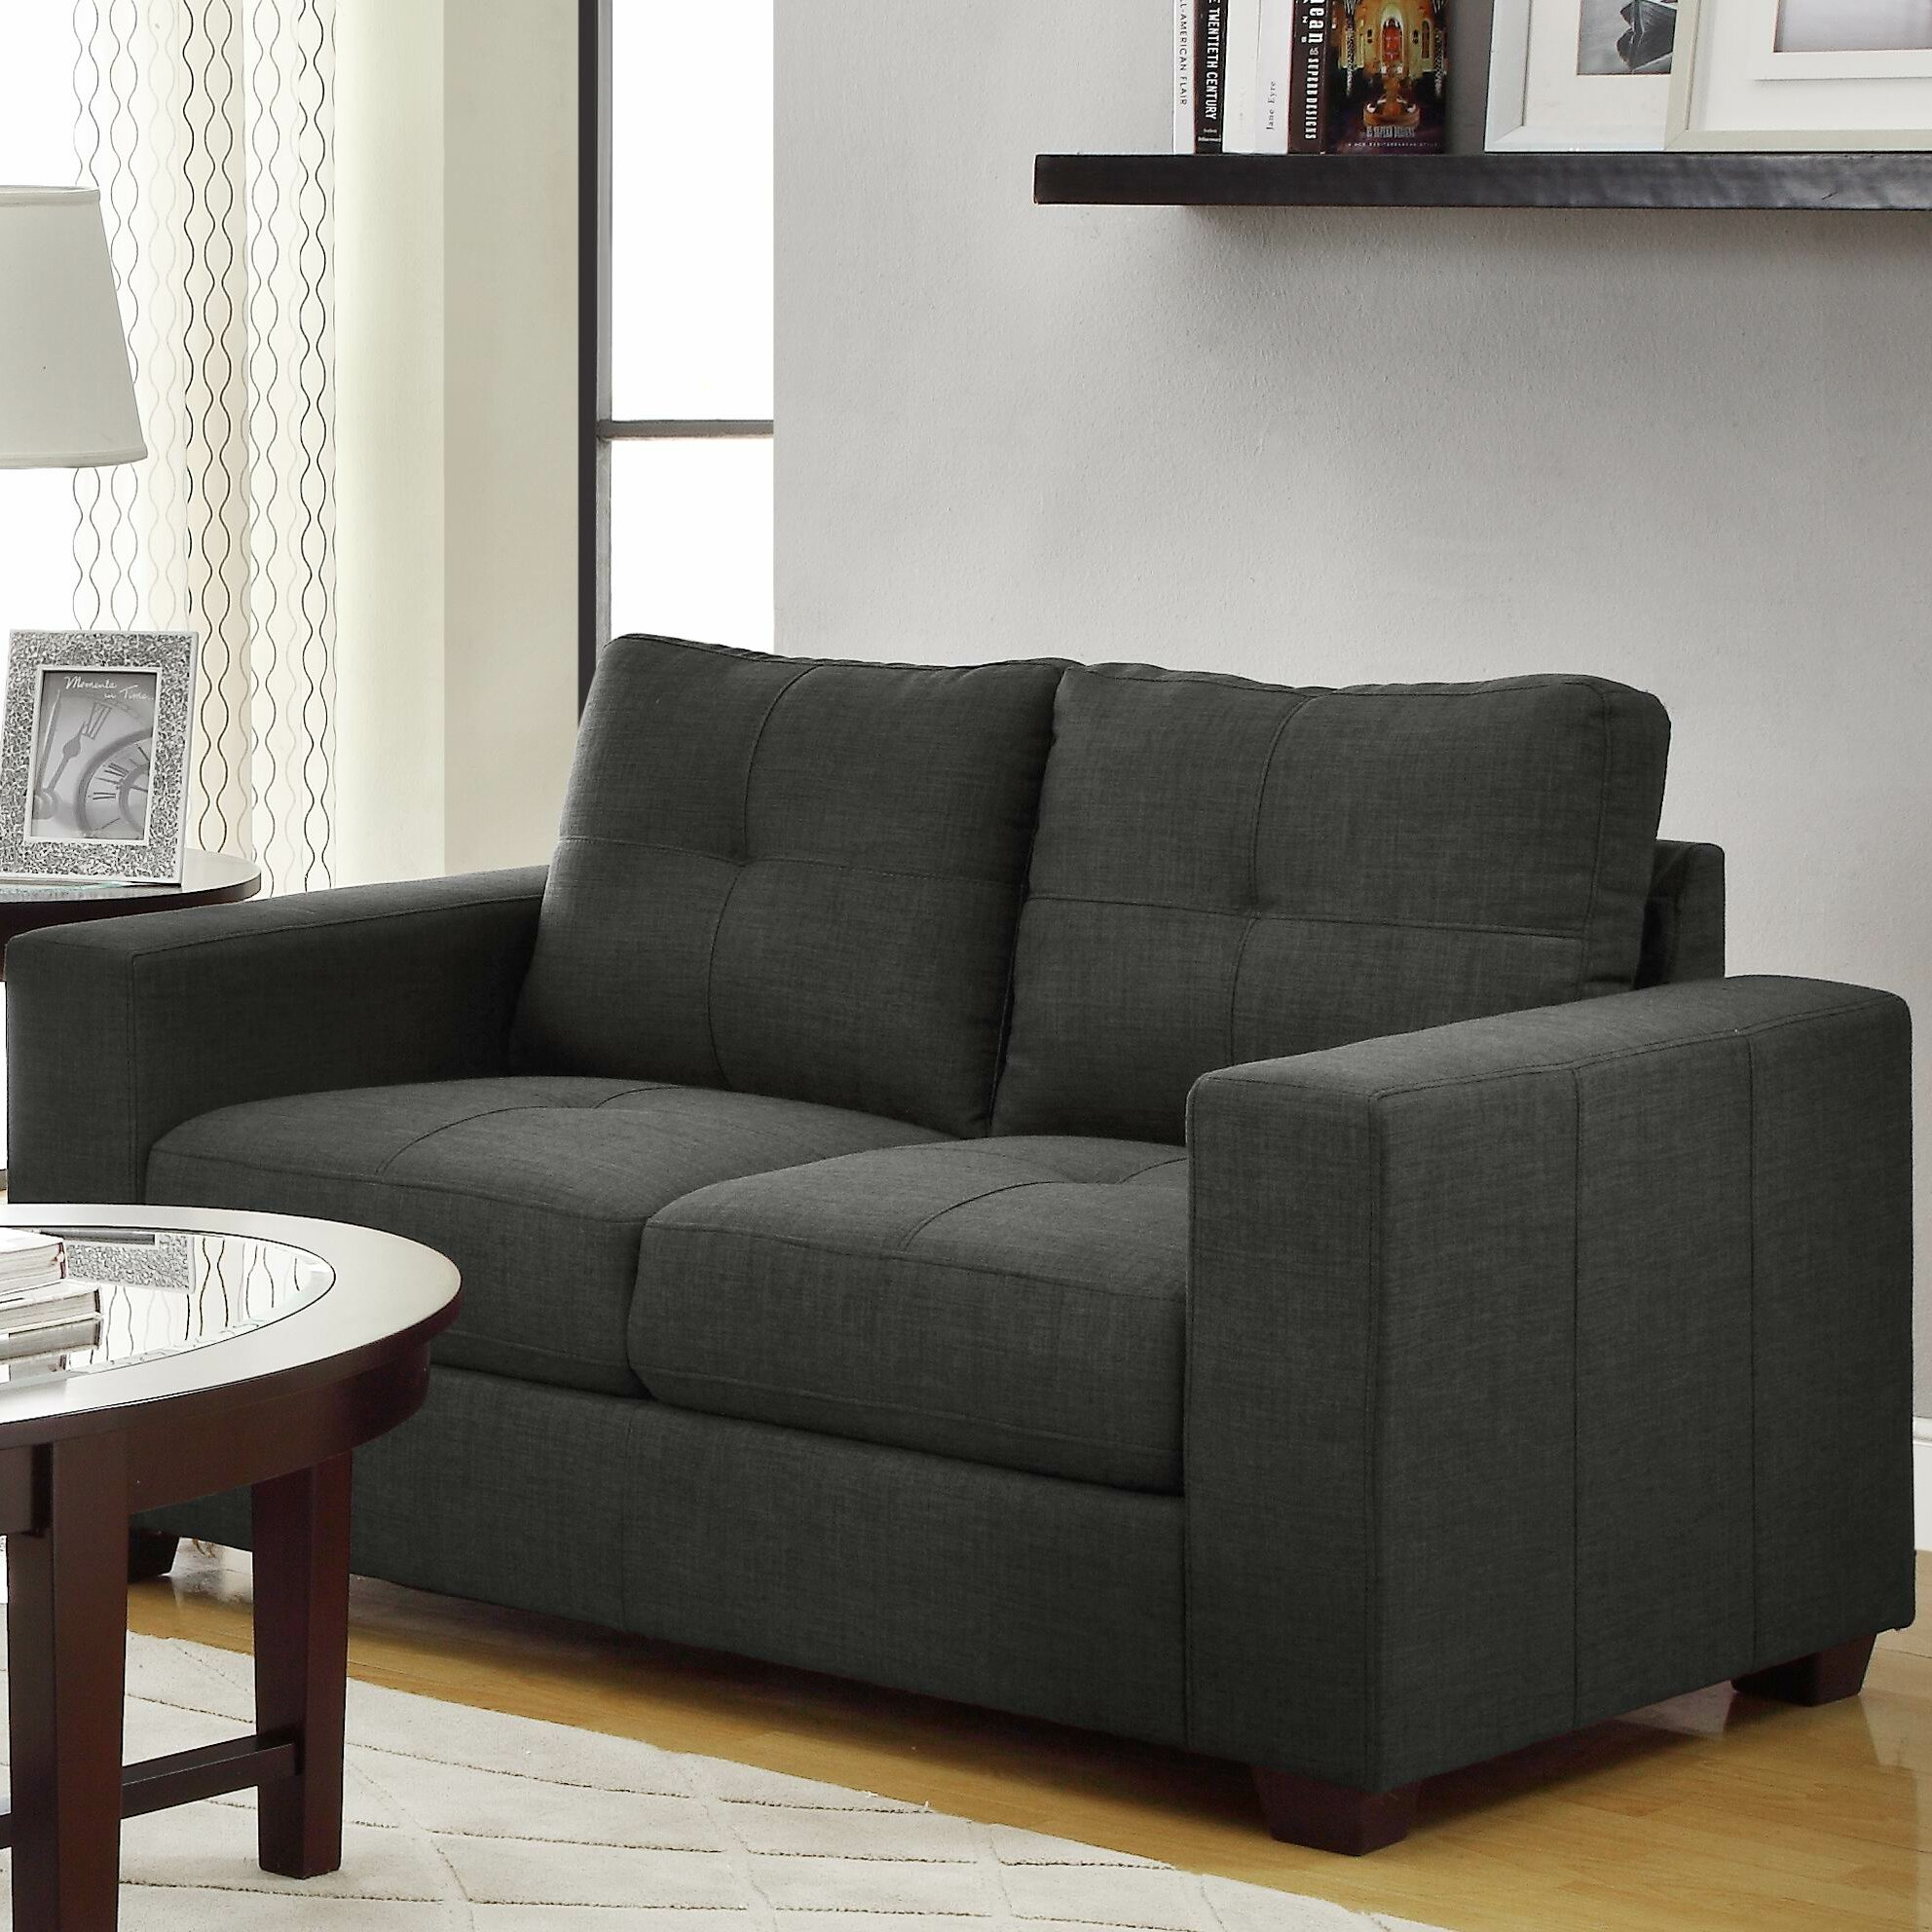 woodhaven hill ashmont living room collection reviews wayfair. Black Bedroom Furniture Sets. Home Design Ideas